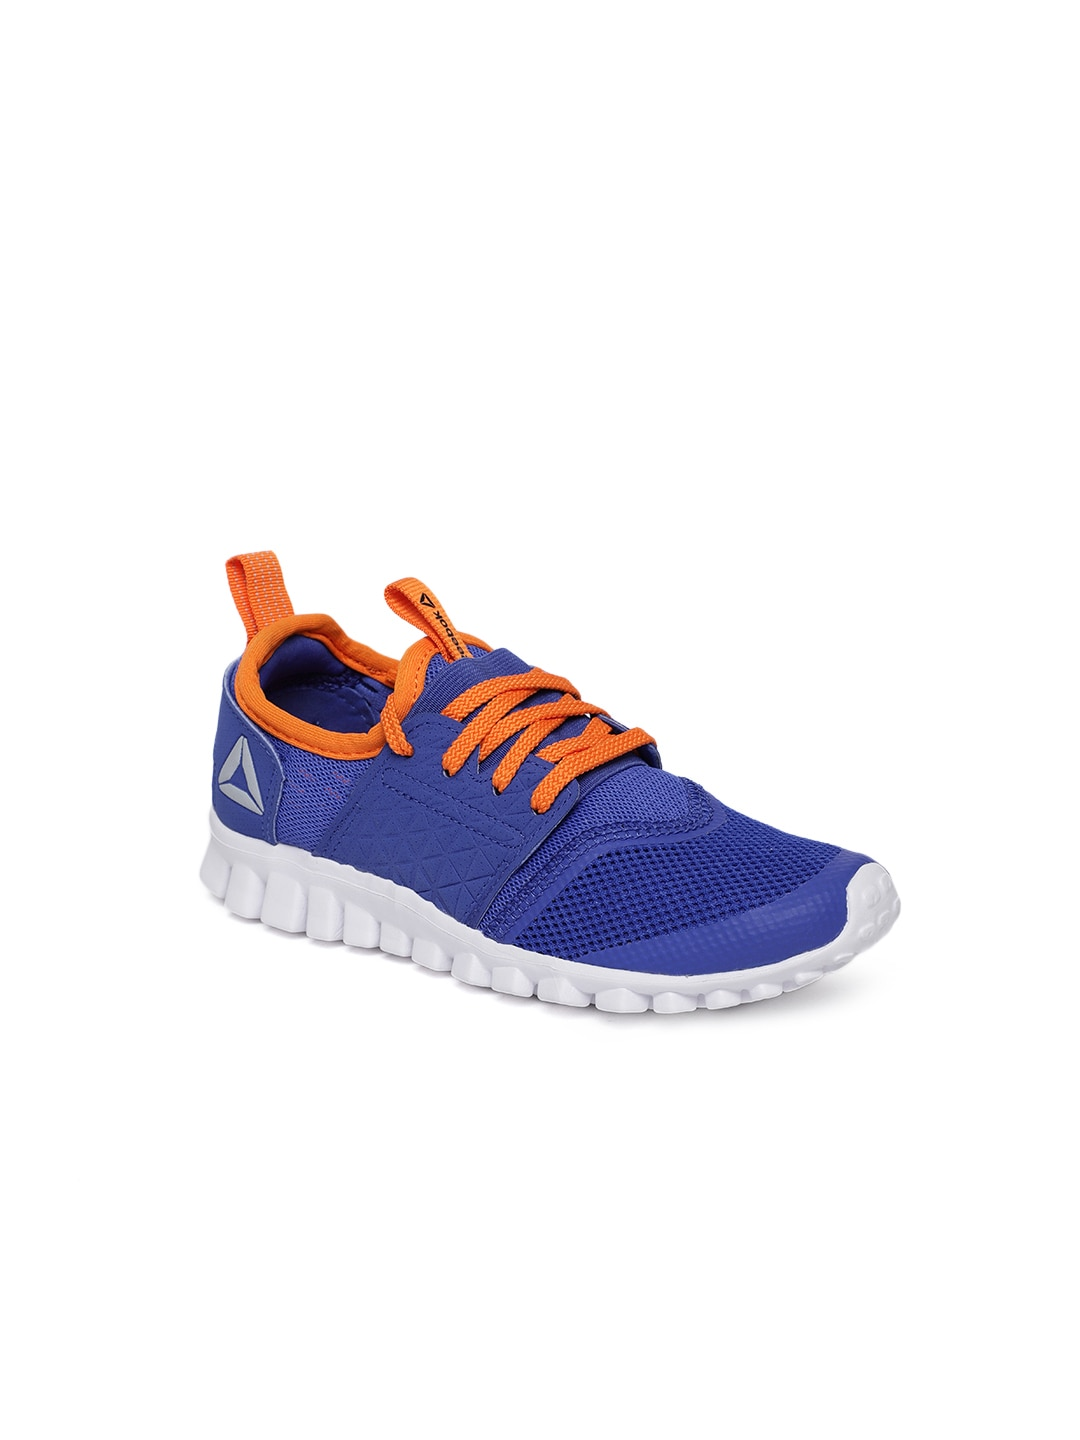 Reebok Sports Shoes - Buy Reebok Sports Shoes in India  1fd4be595